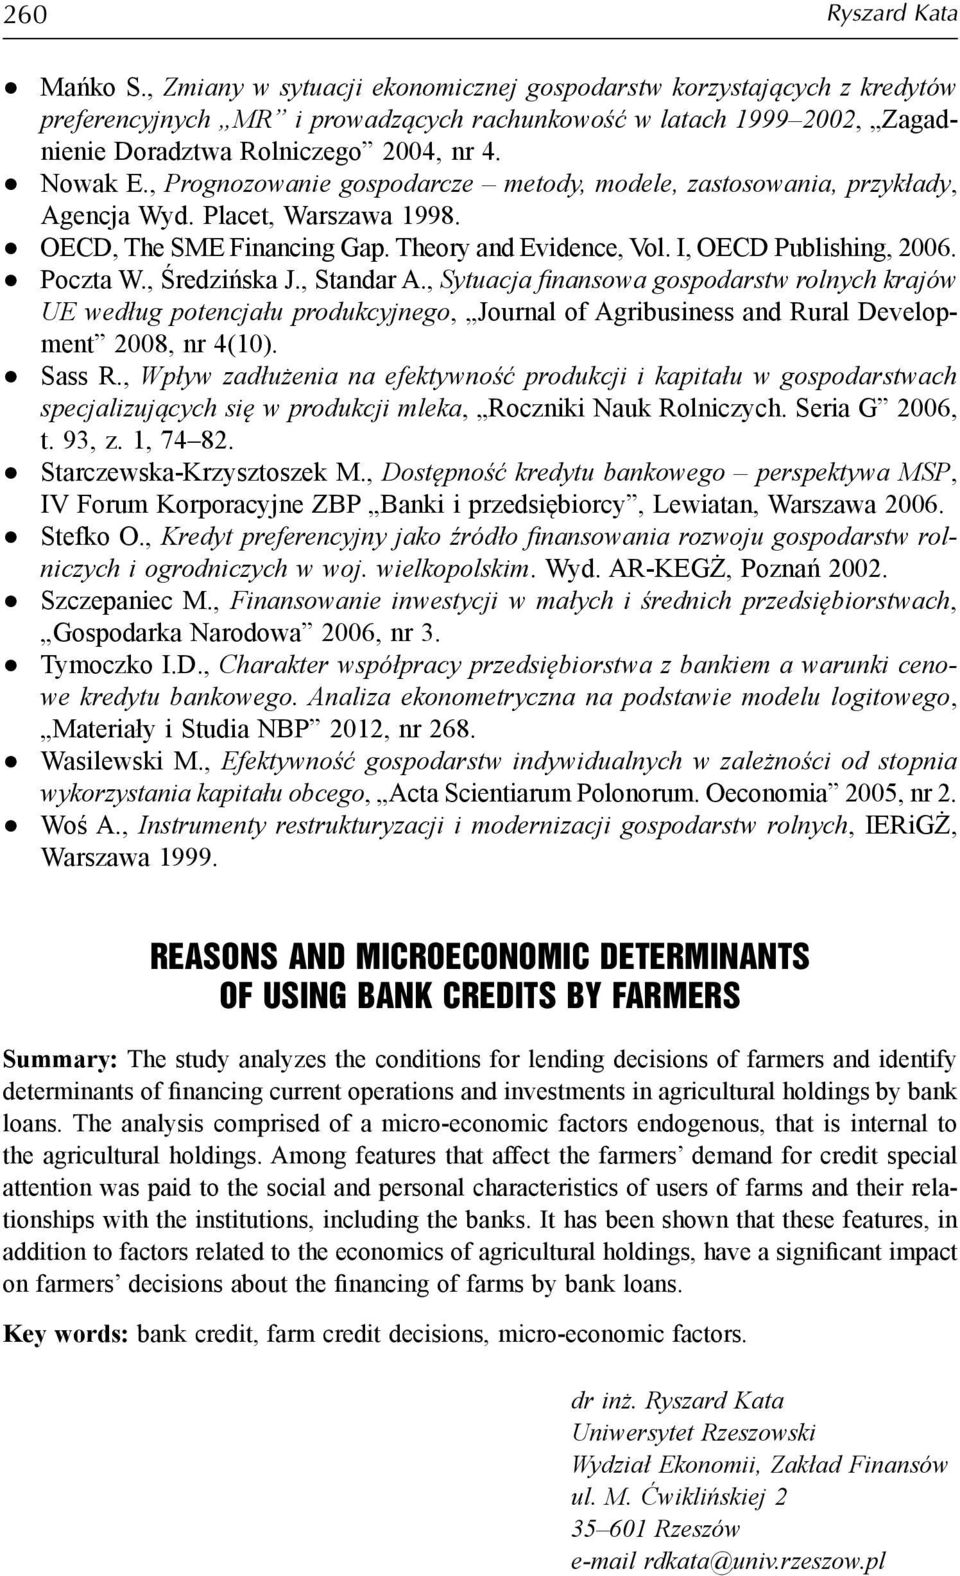 , Prognozowanie gospodarcze metody, modele, zastosowania, przykłady, Agencja Wyd. Placet, Warszawa 1998. OECD, The SME Financing Gap. Theory and Evidence, Vol. I, OECD Publishing, 2006. Poczta W.